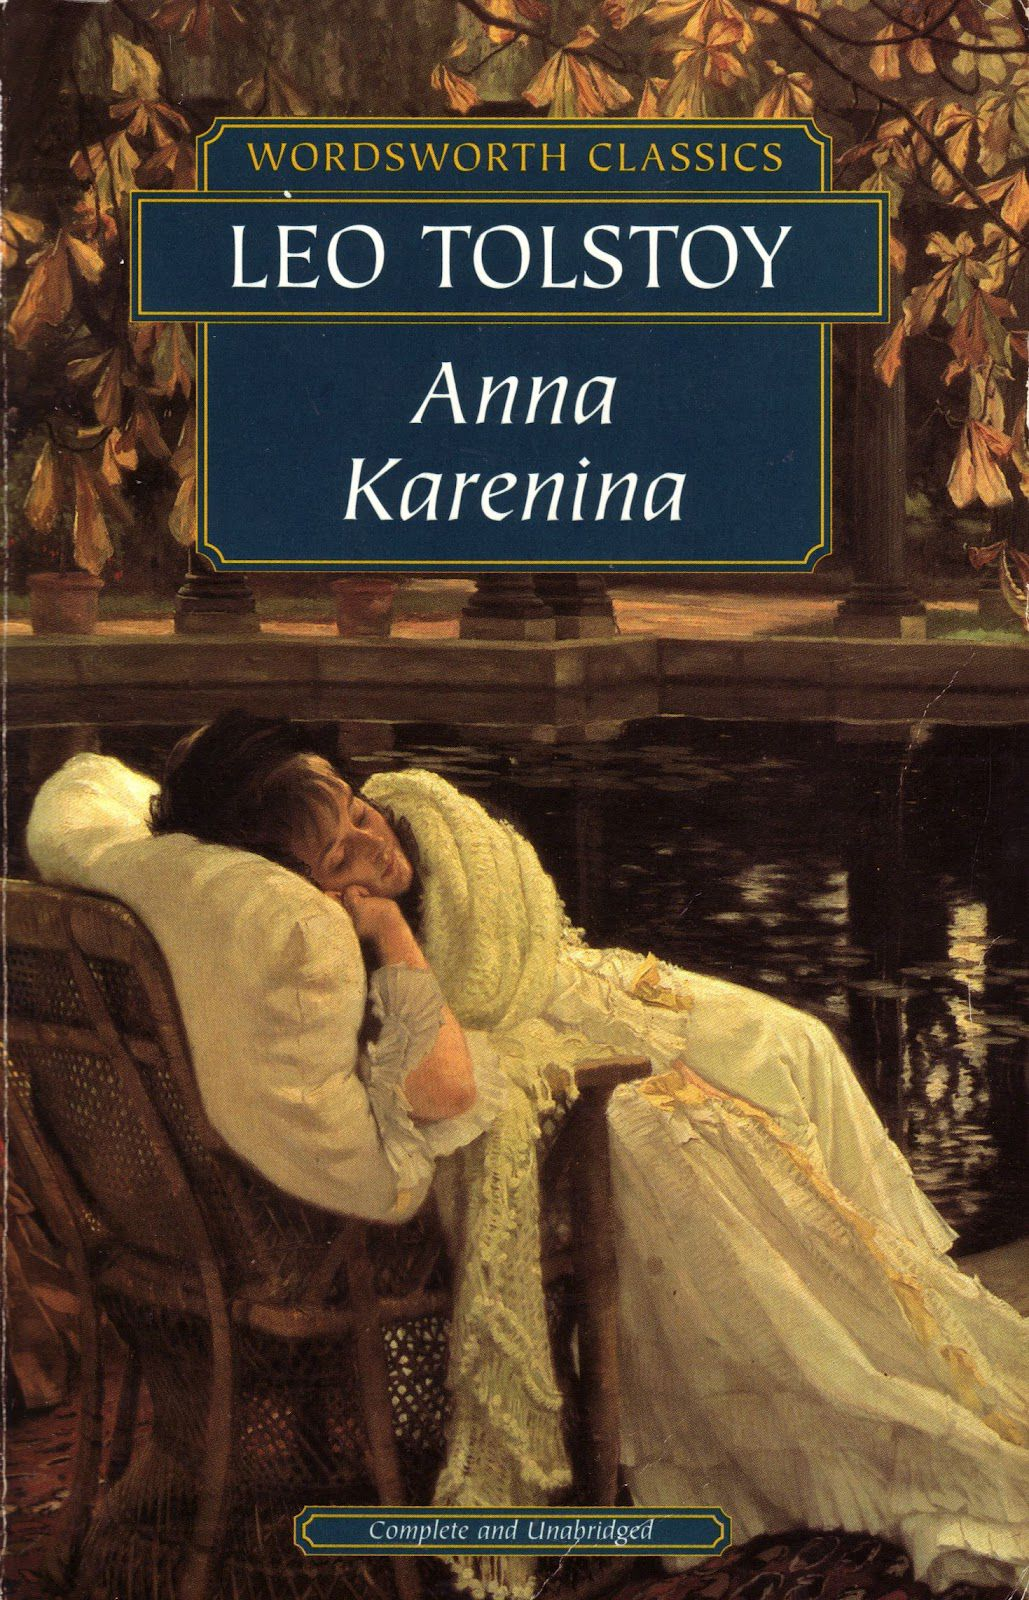 "a literary analysis of the ending of anna karenina by leo tolstoy Go on these deaths are somehow parallel to leo tolstoy's death in a train station (biographical approach) you may be sure of that anna's son ran away in the freezing winter breezerussian formalism foreshadowing on adultery ""alexei the high social class displays power structure."